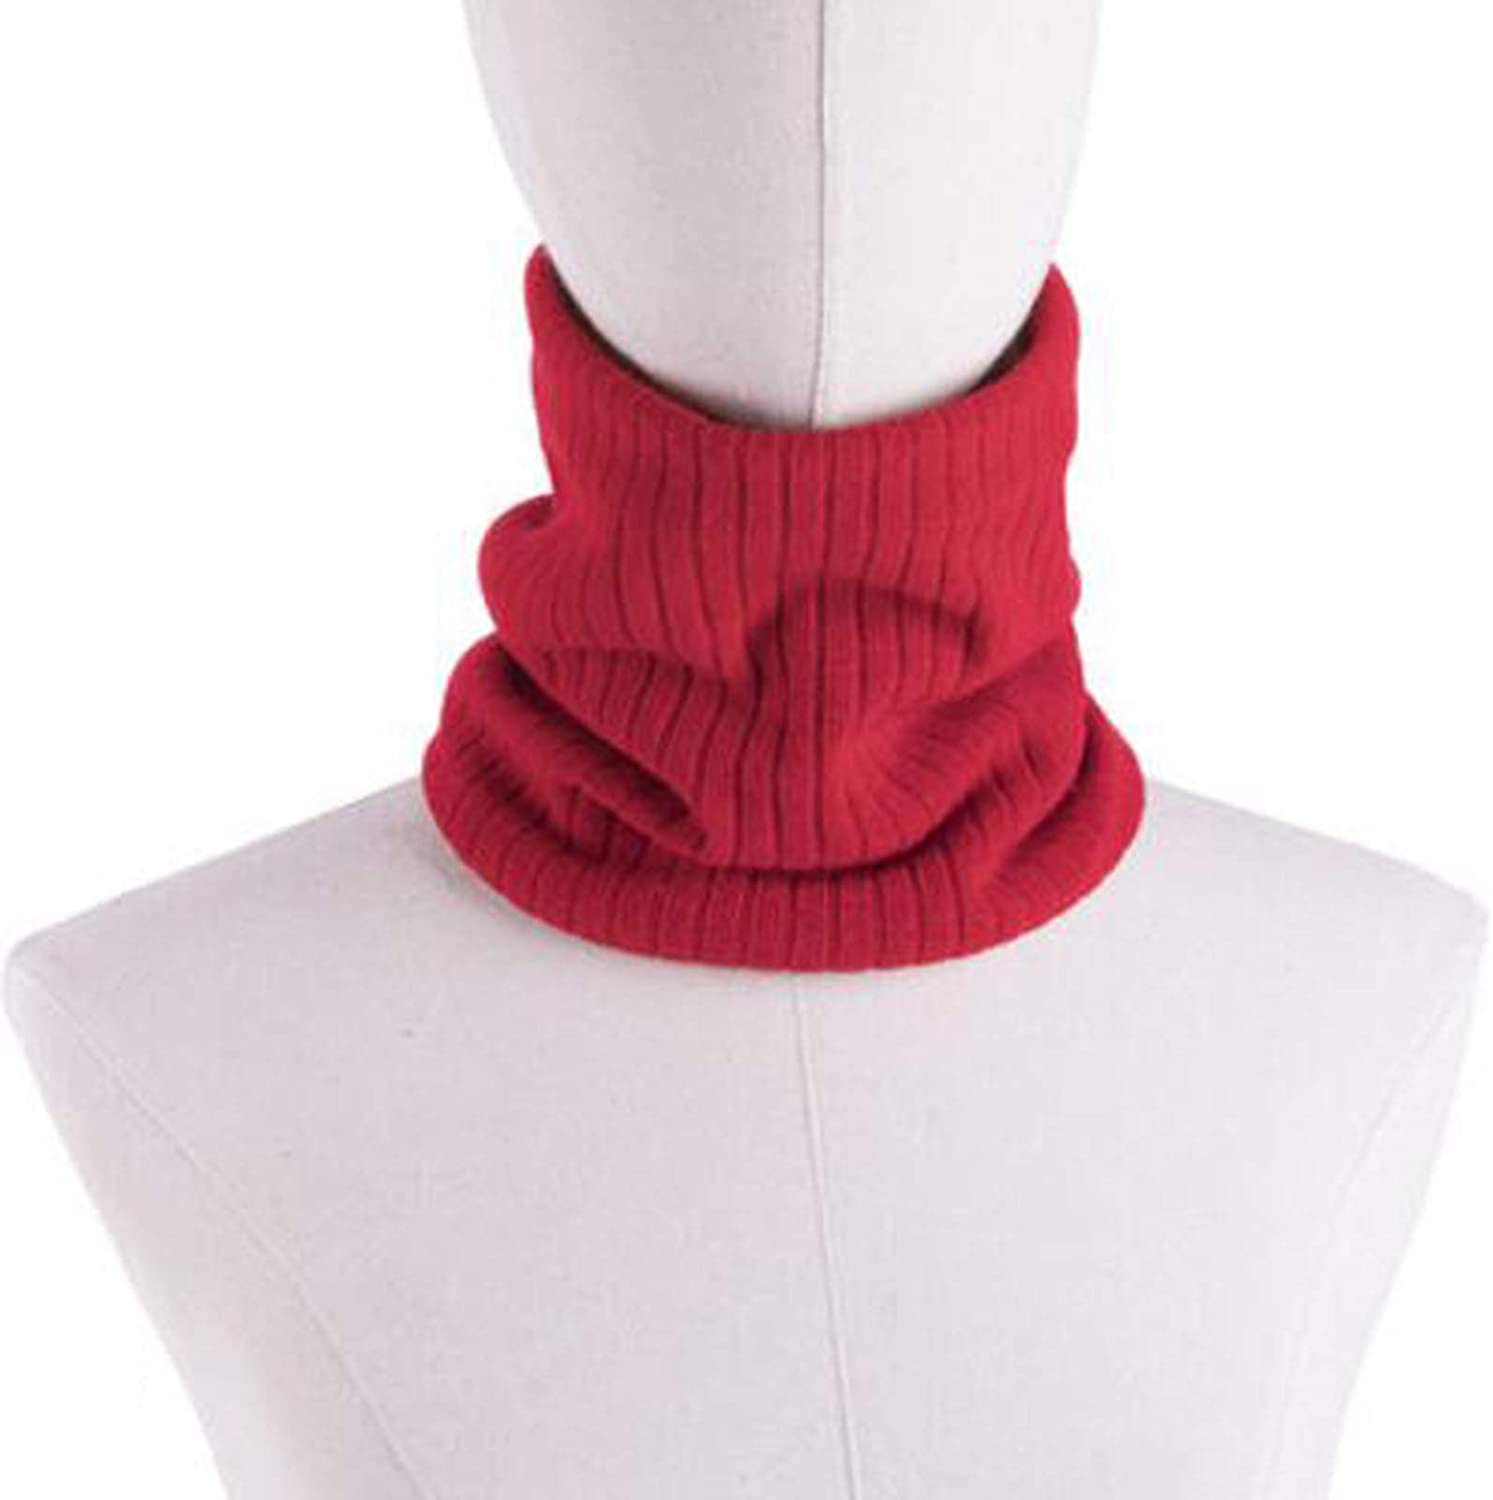 XIURAB Autumn and Winter Knitted Pullover Scarf, Thick Cold-Proof Scarf, Multi-Functional Outdoor Warm Collar